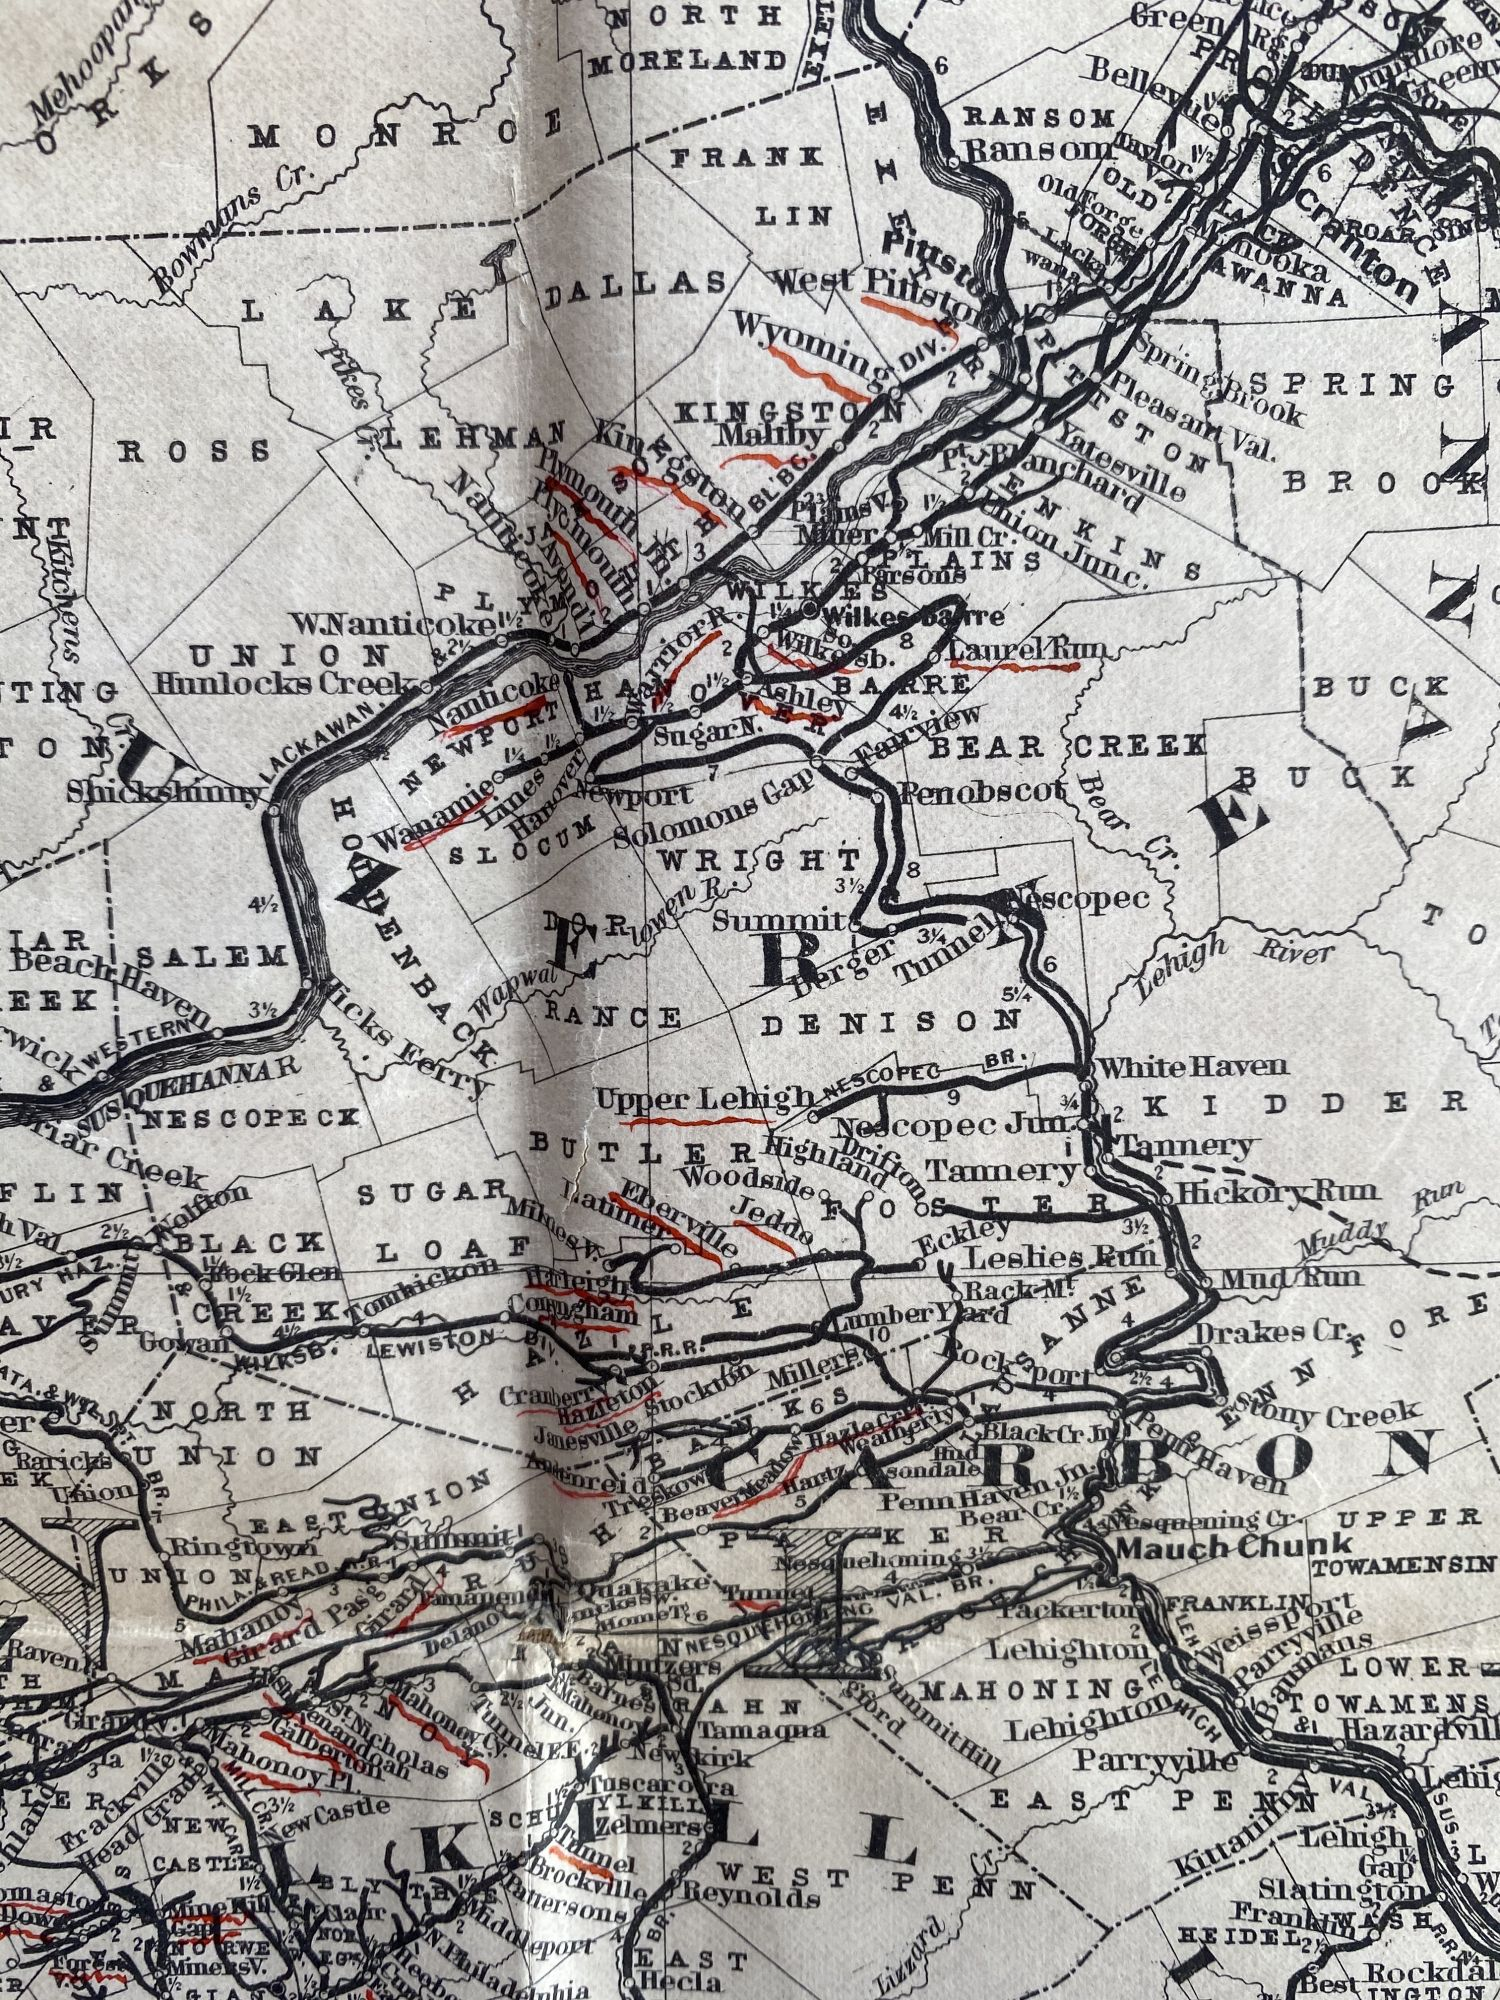 Image of: Colton S New Township Railroad Map Of Pennsylvania And New Jersey Cover Title Anderson S Rail Road Map Of Pennsylvania Published By J S Smith Phila G W Colton